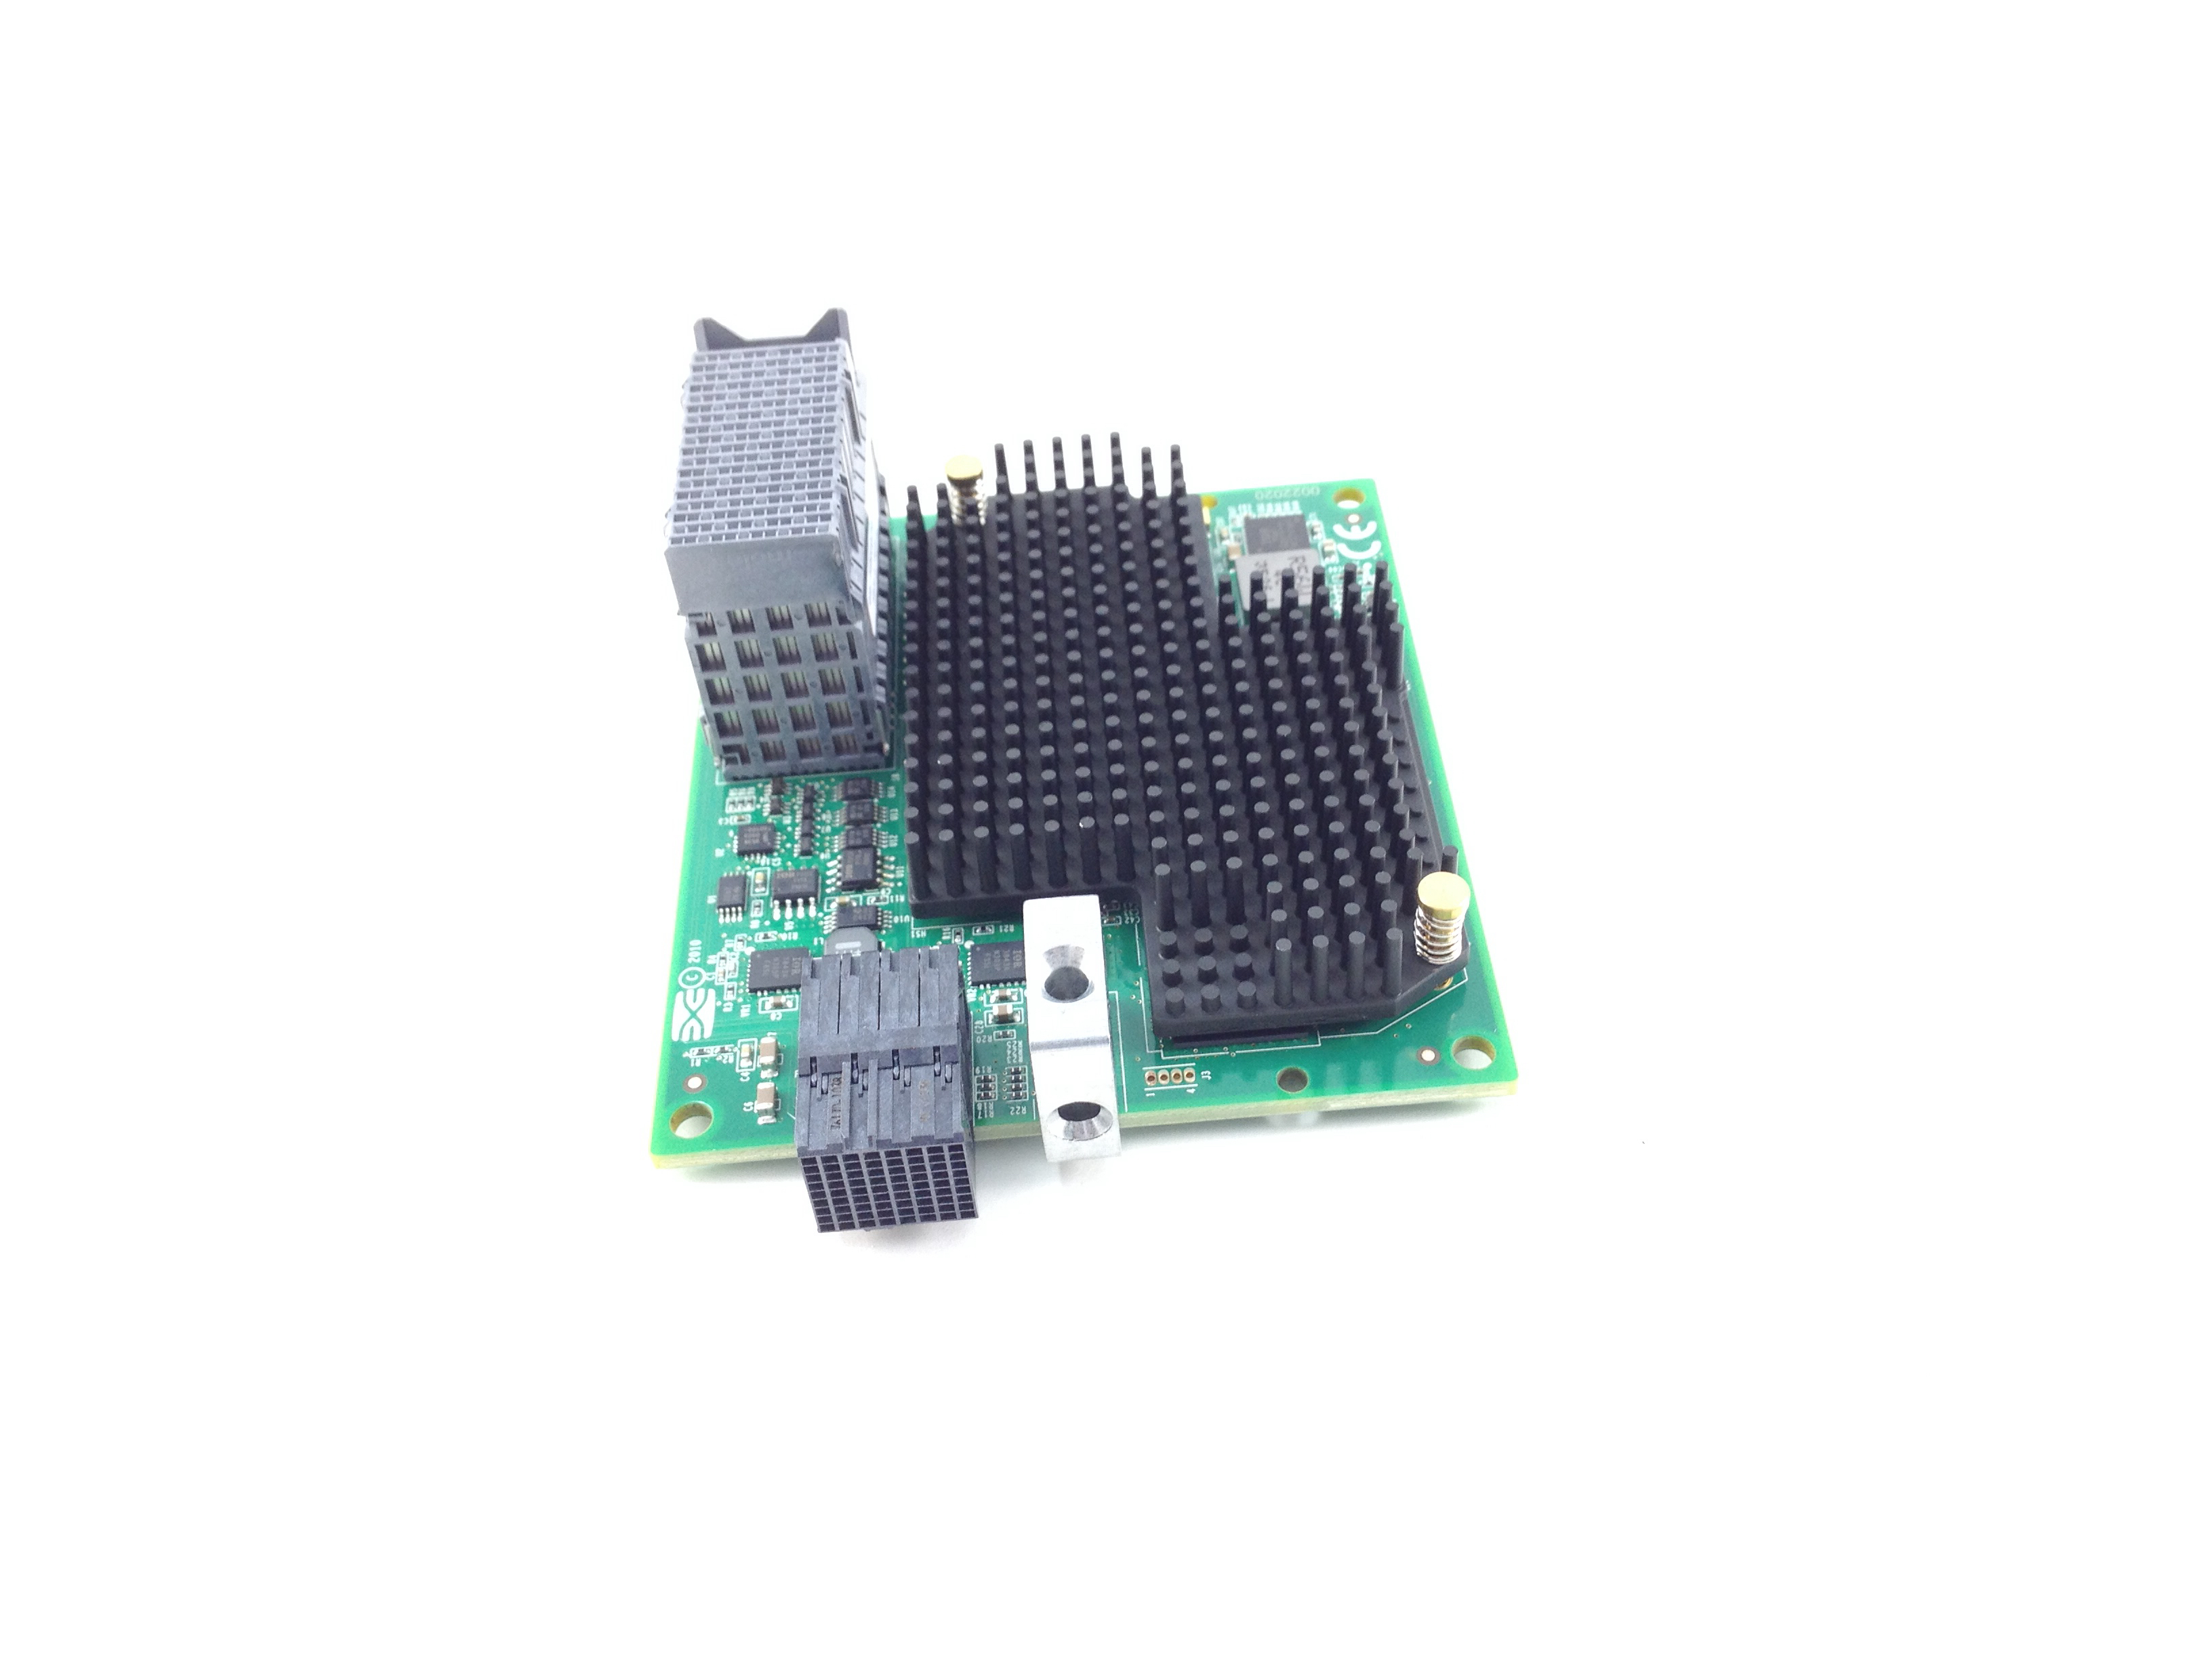 IBM Flex System Cn4054 10 Gigabit Virtual Fabric Adapter (90Y3557)